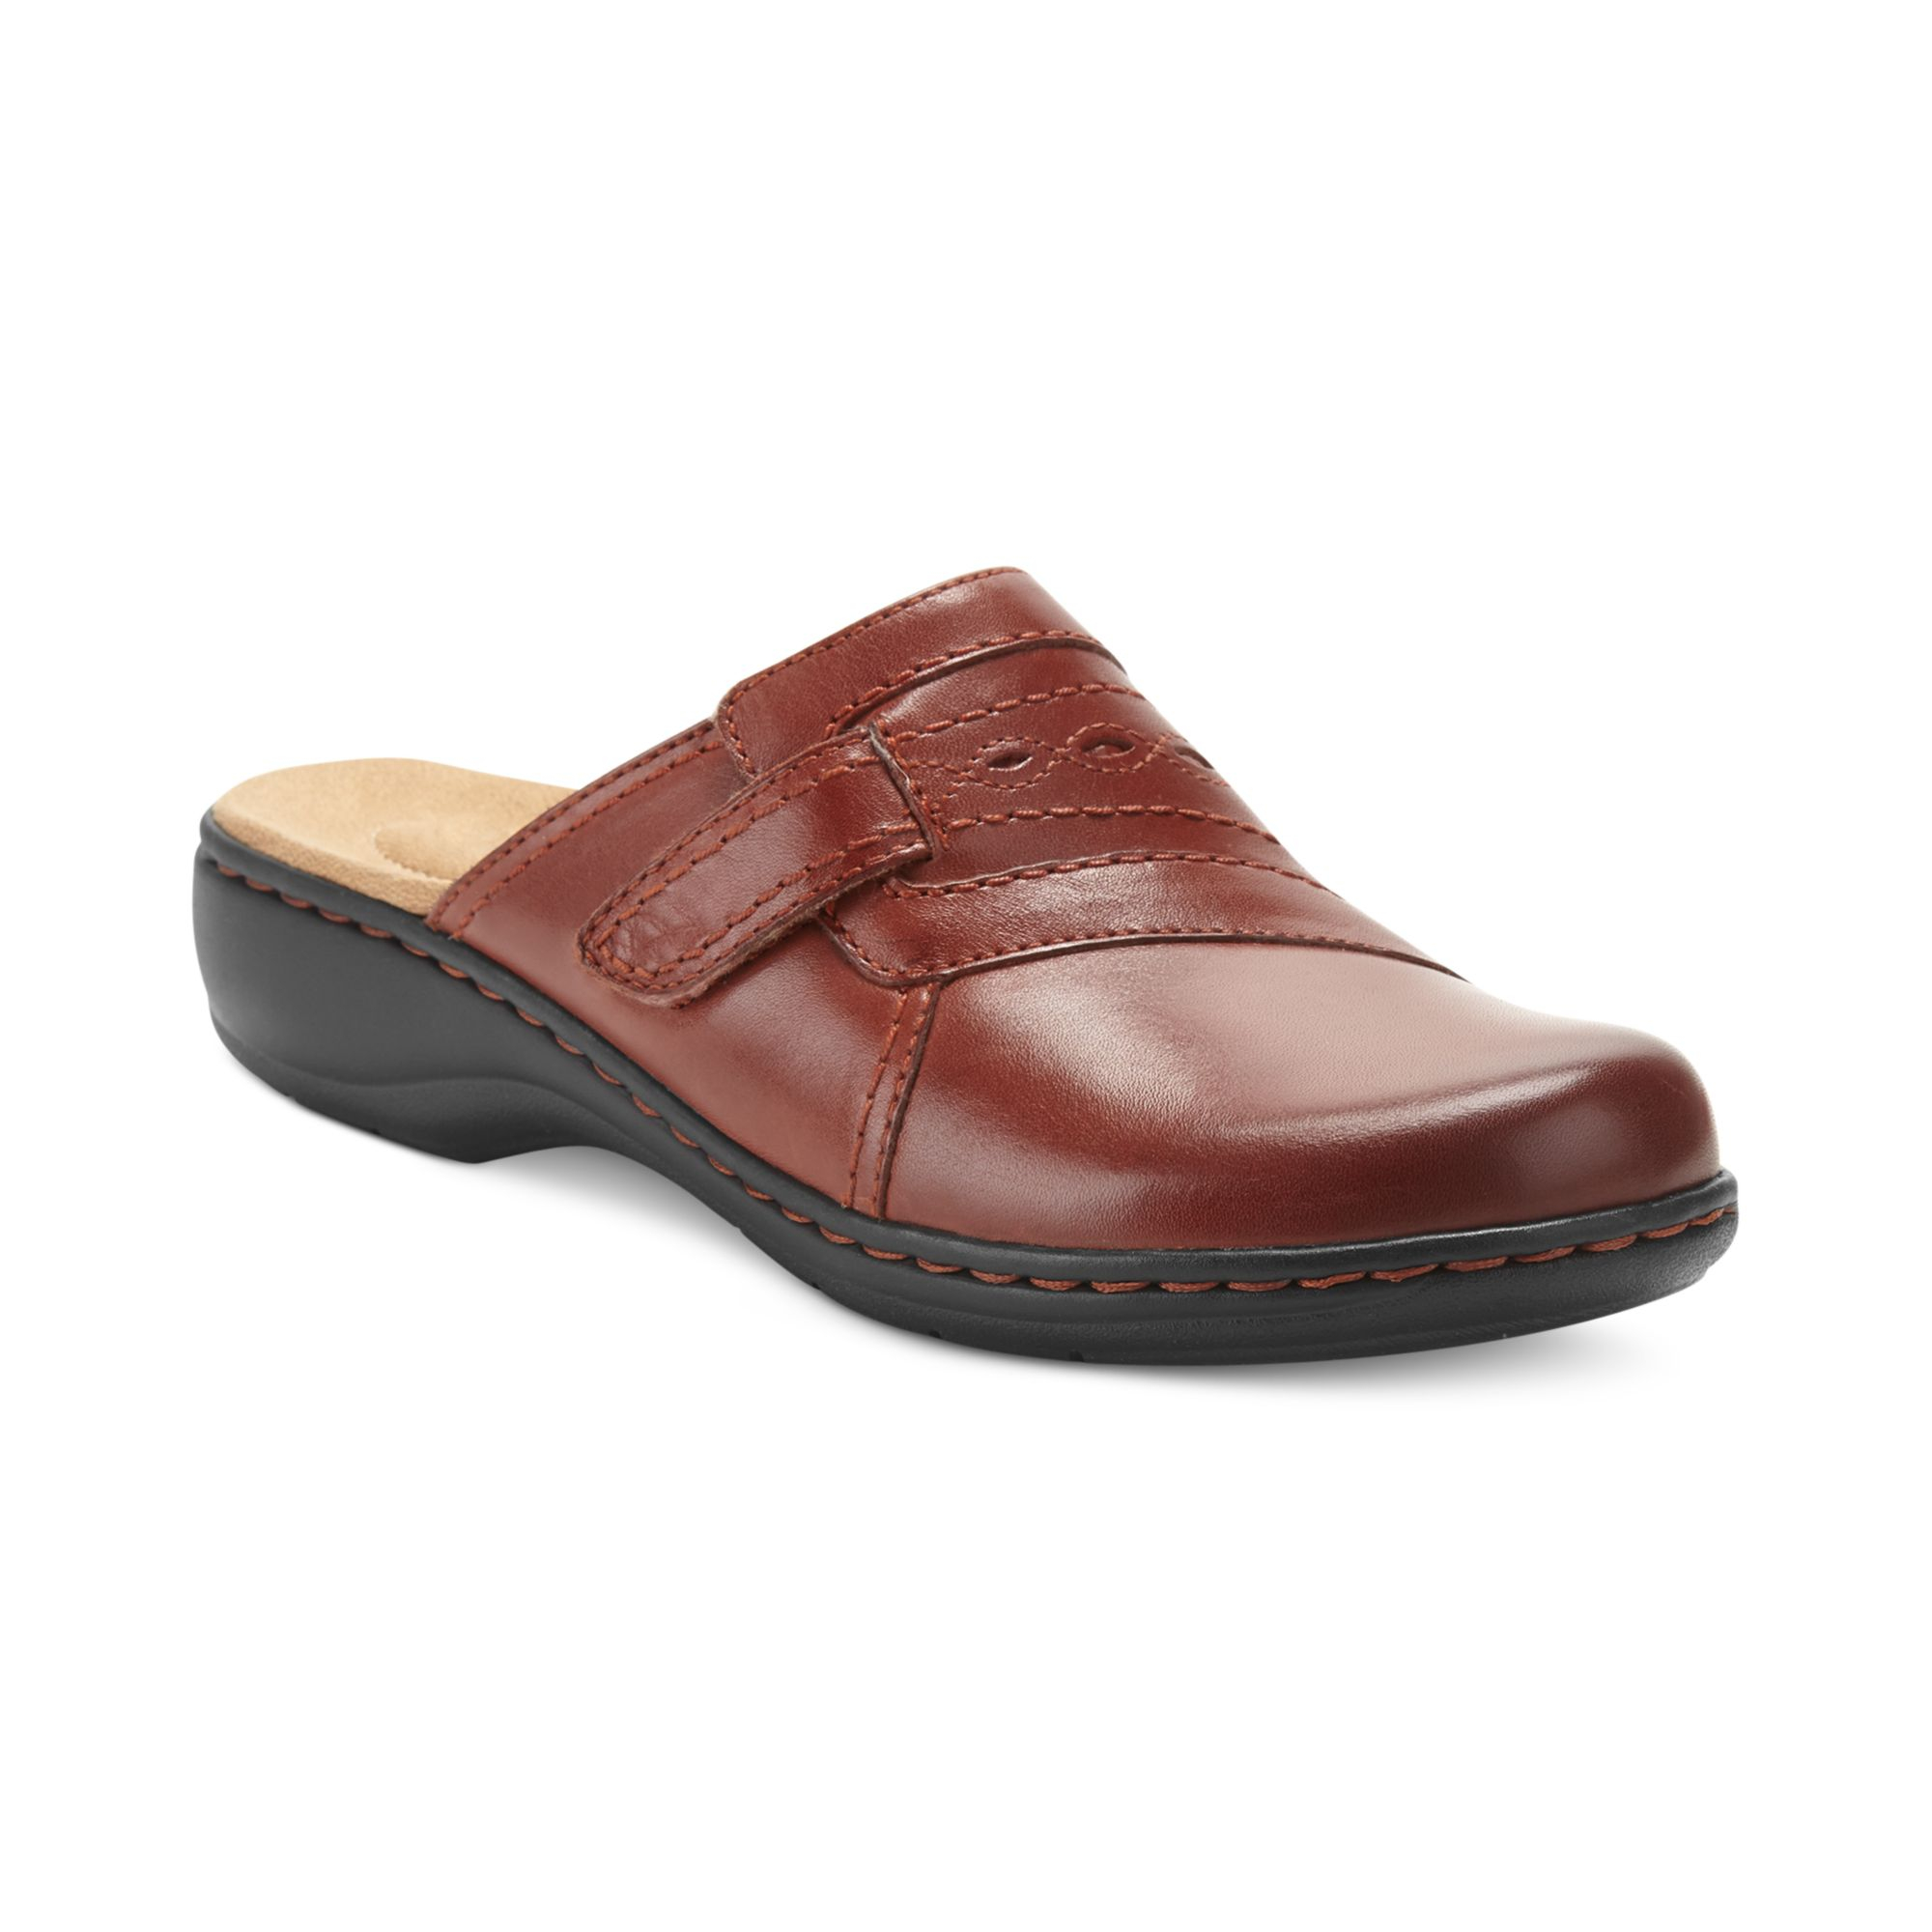 Clarks Shoes Pictures Womens